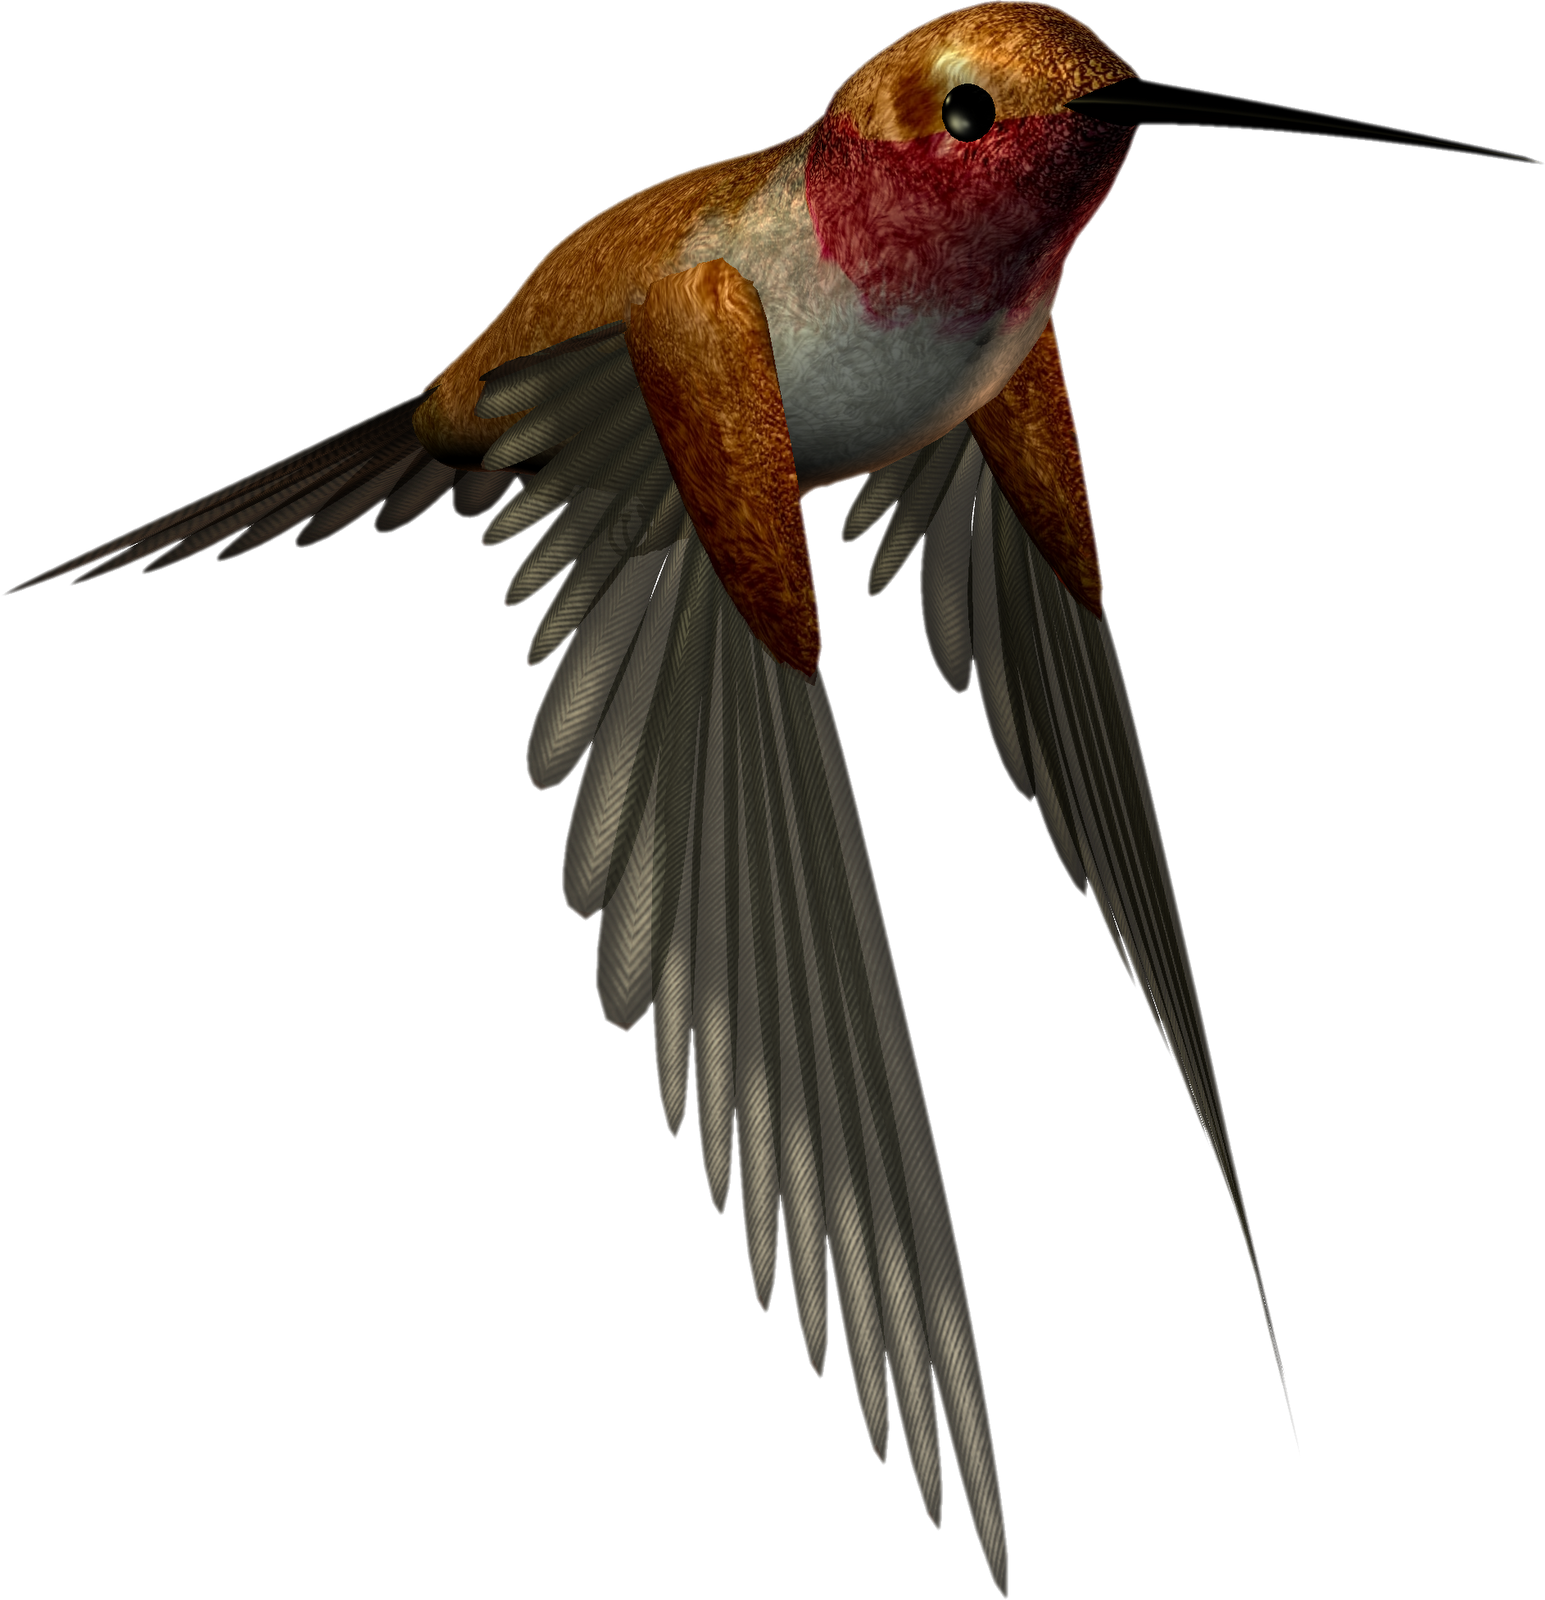 Hummingbird clipart rufous hummingbird. Free high resolution download